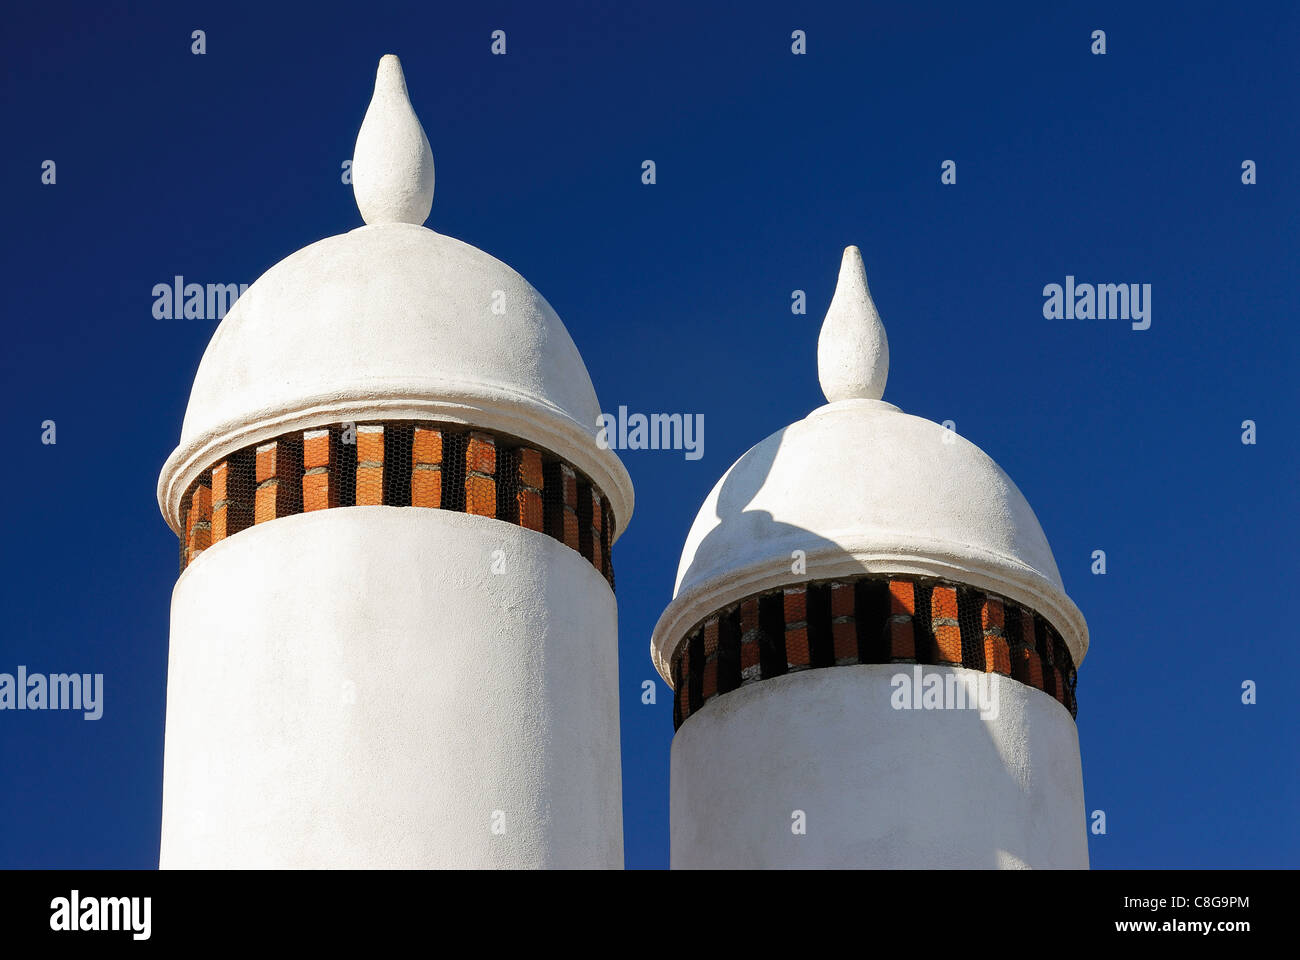 Portugal, Alentejo: Typical chimneys in the village Aldeia da Luz at the margins of the Barrage of Alqueva - Stock Image